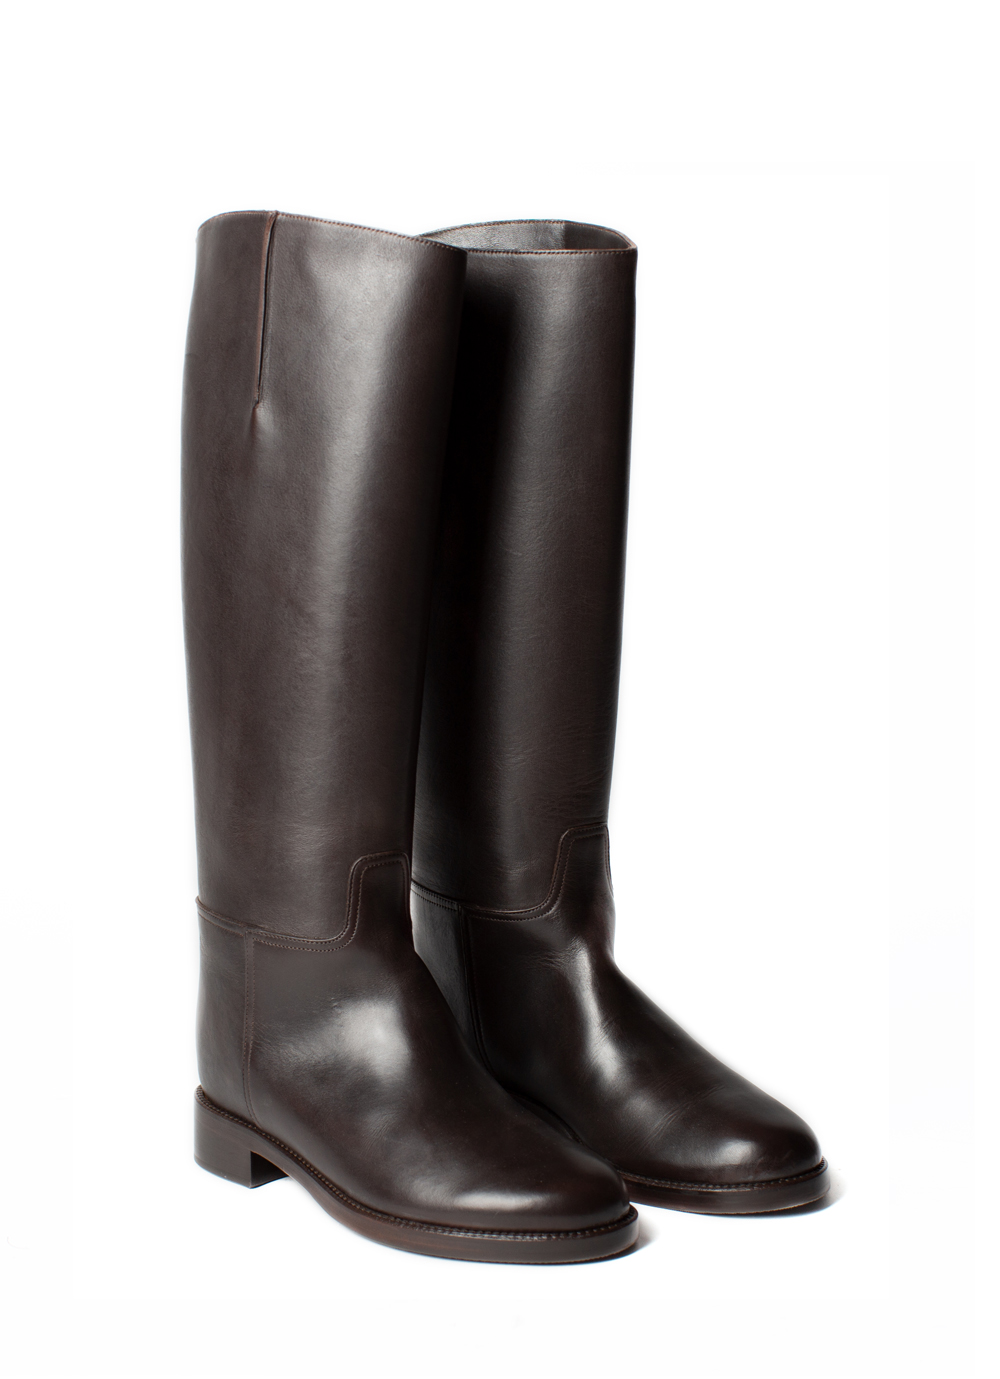 Riding Boots, dark brown